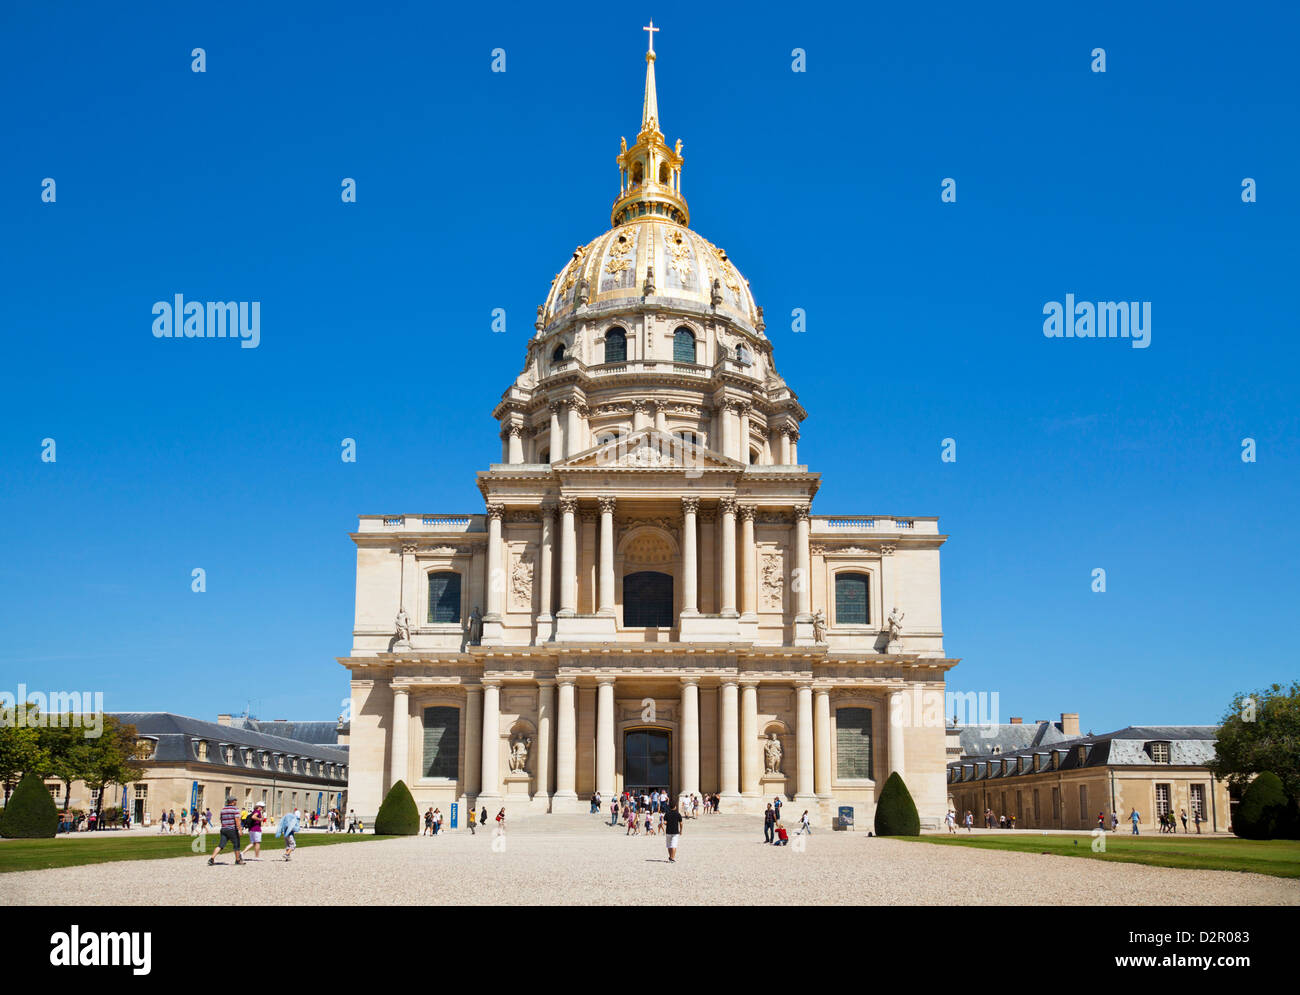 Eglise du Dome, Les Invalides, Paris, France, Europe - Stock Image